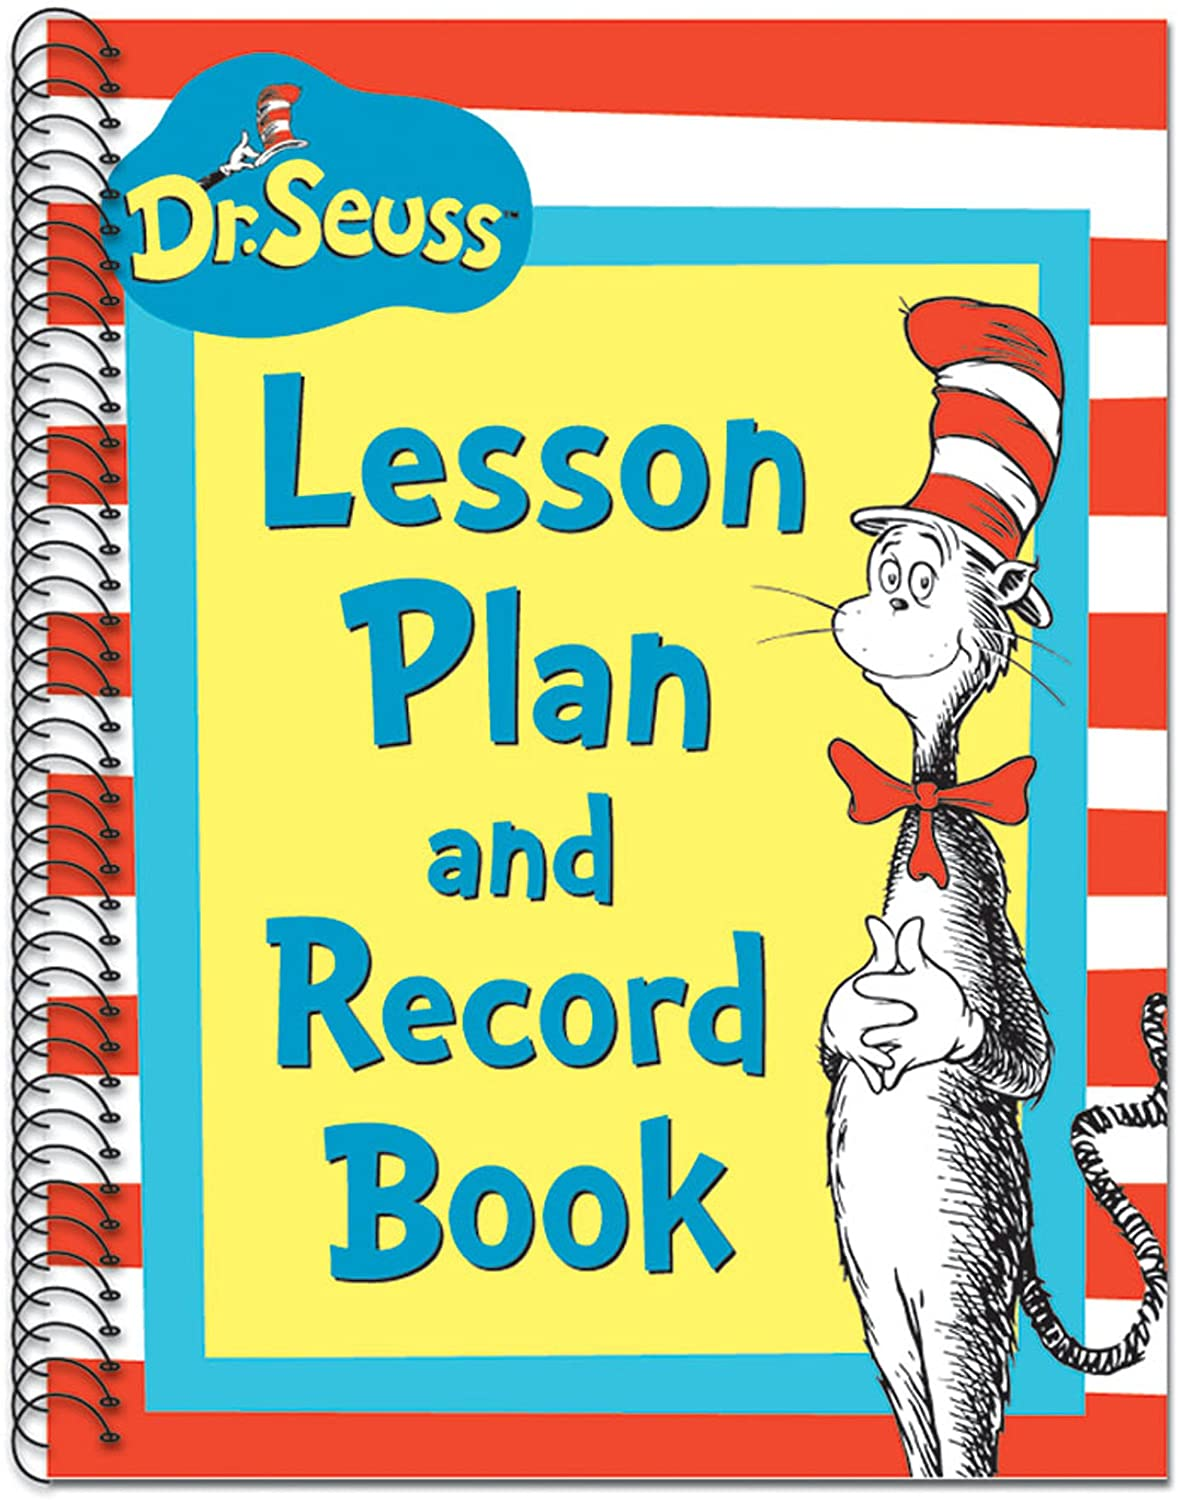 "Eureka Dr. Seuss's Cat In Hat Lesson Plan/Record Book Miscellaneous, 40 Weeks, 8.5"" x 11"": Toys & Games"